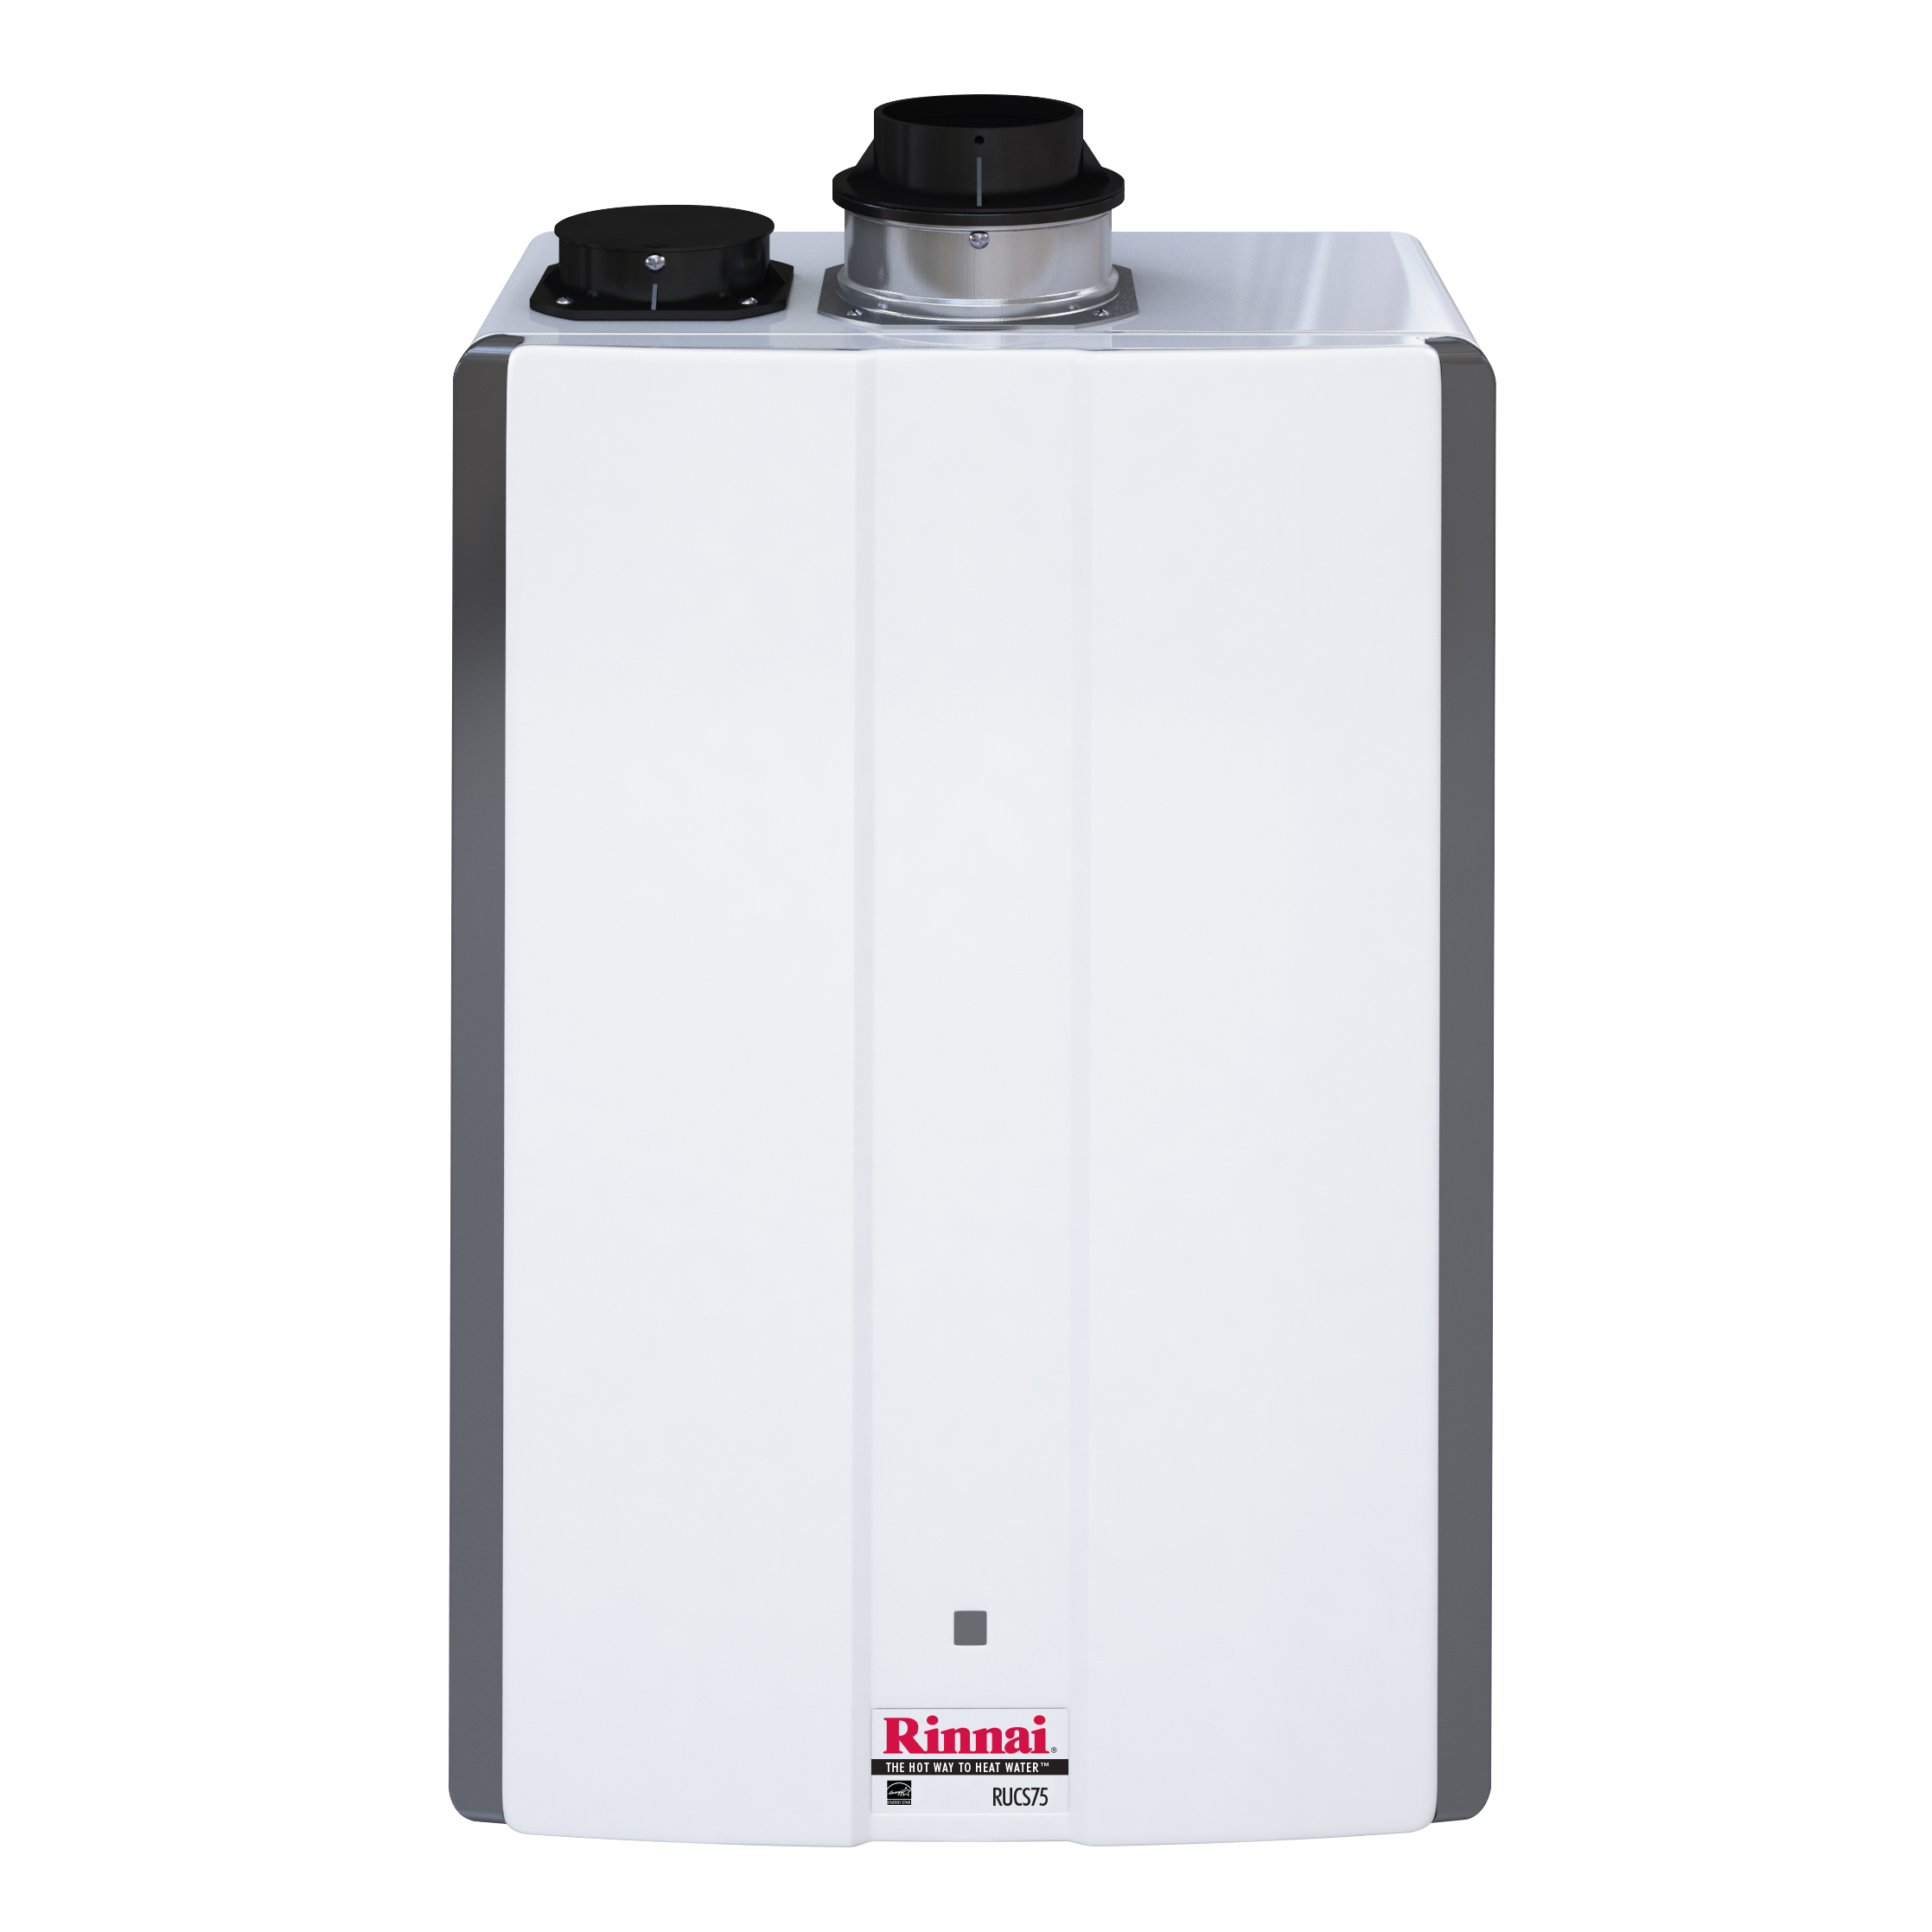 Rinnai Water Heater 9